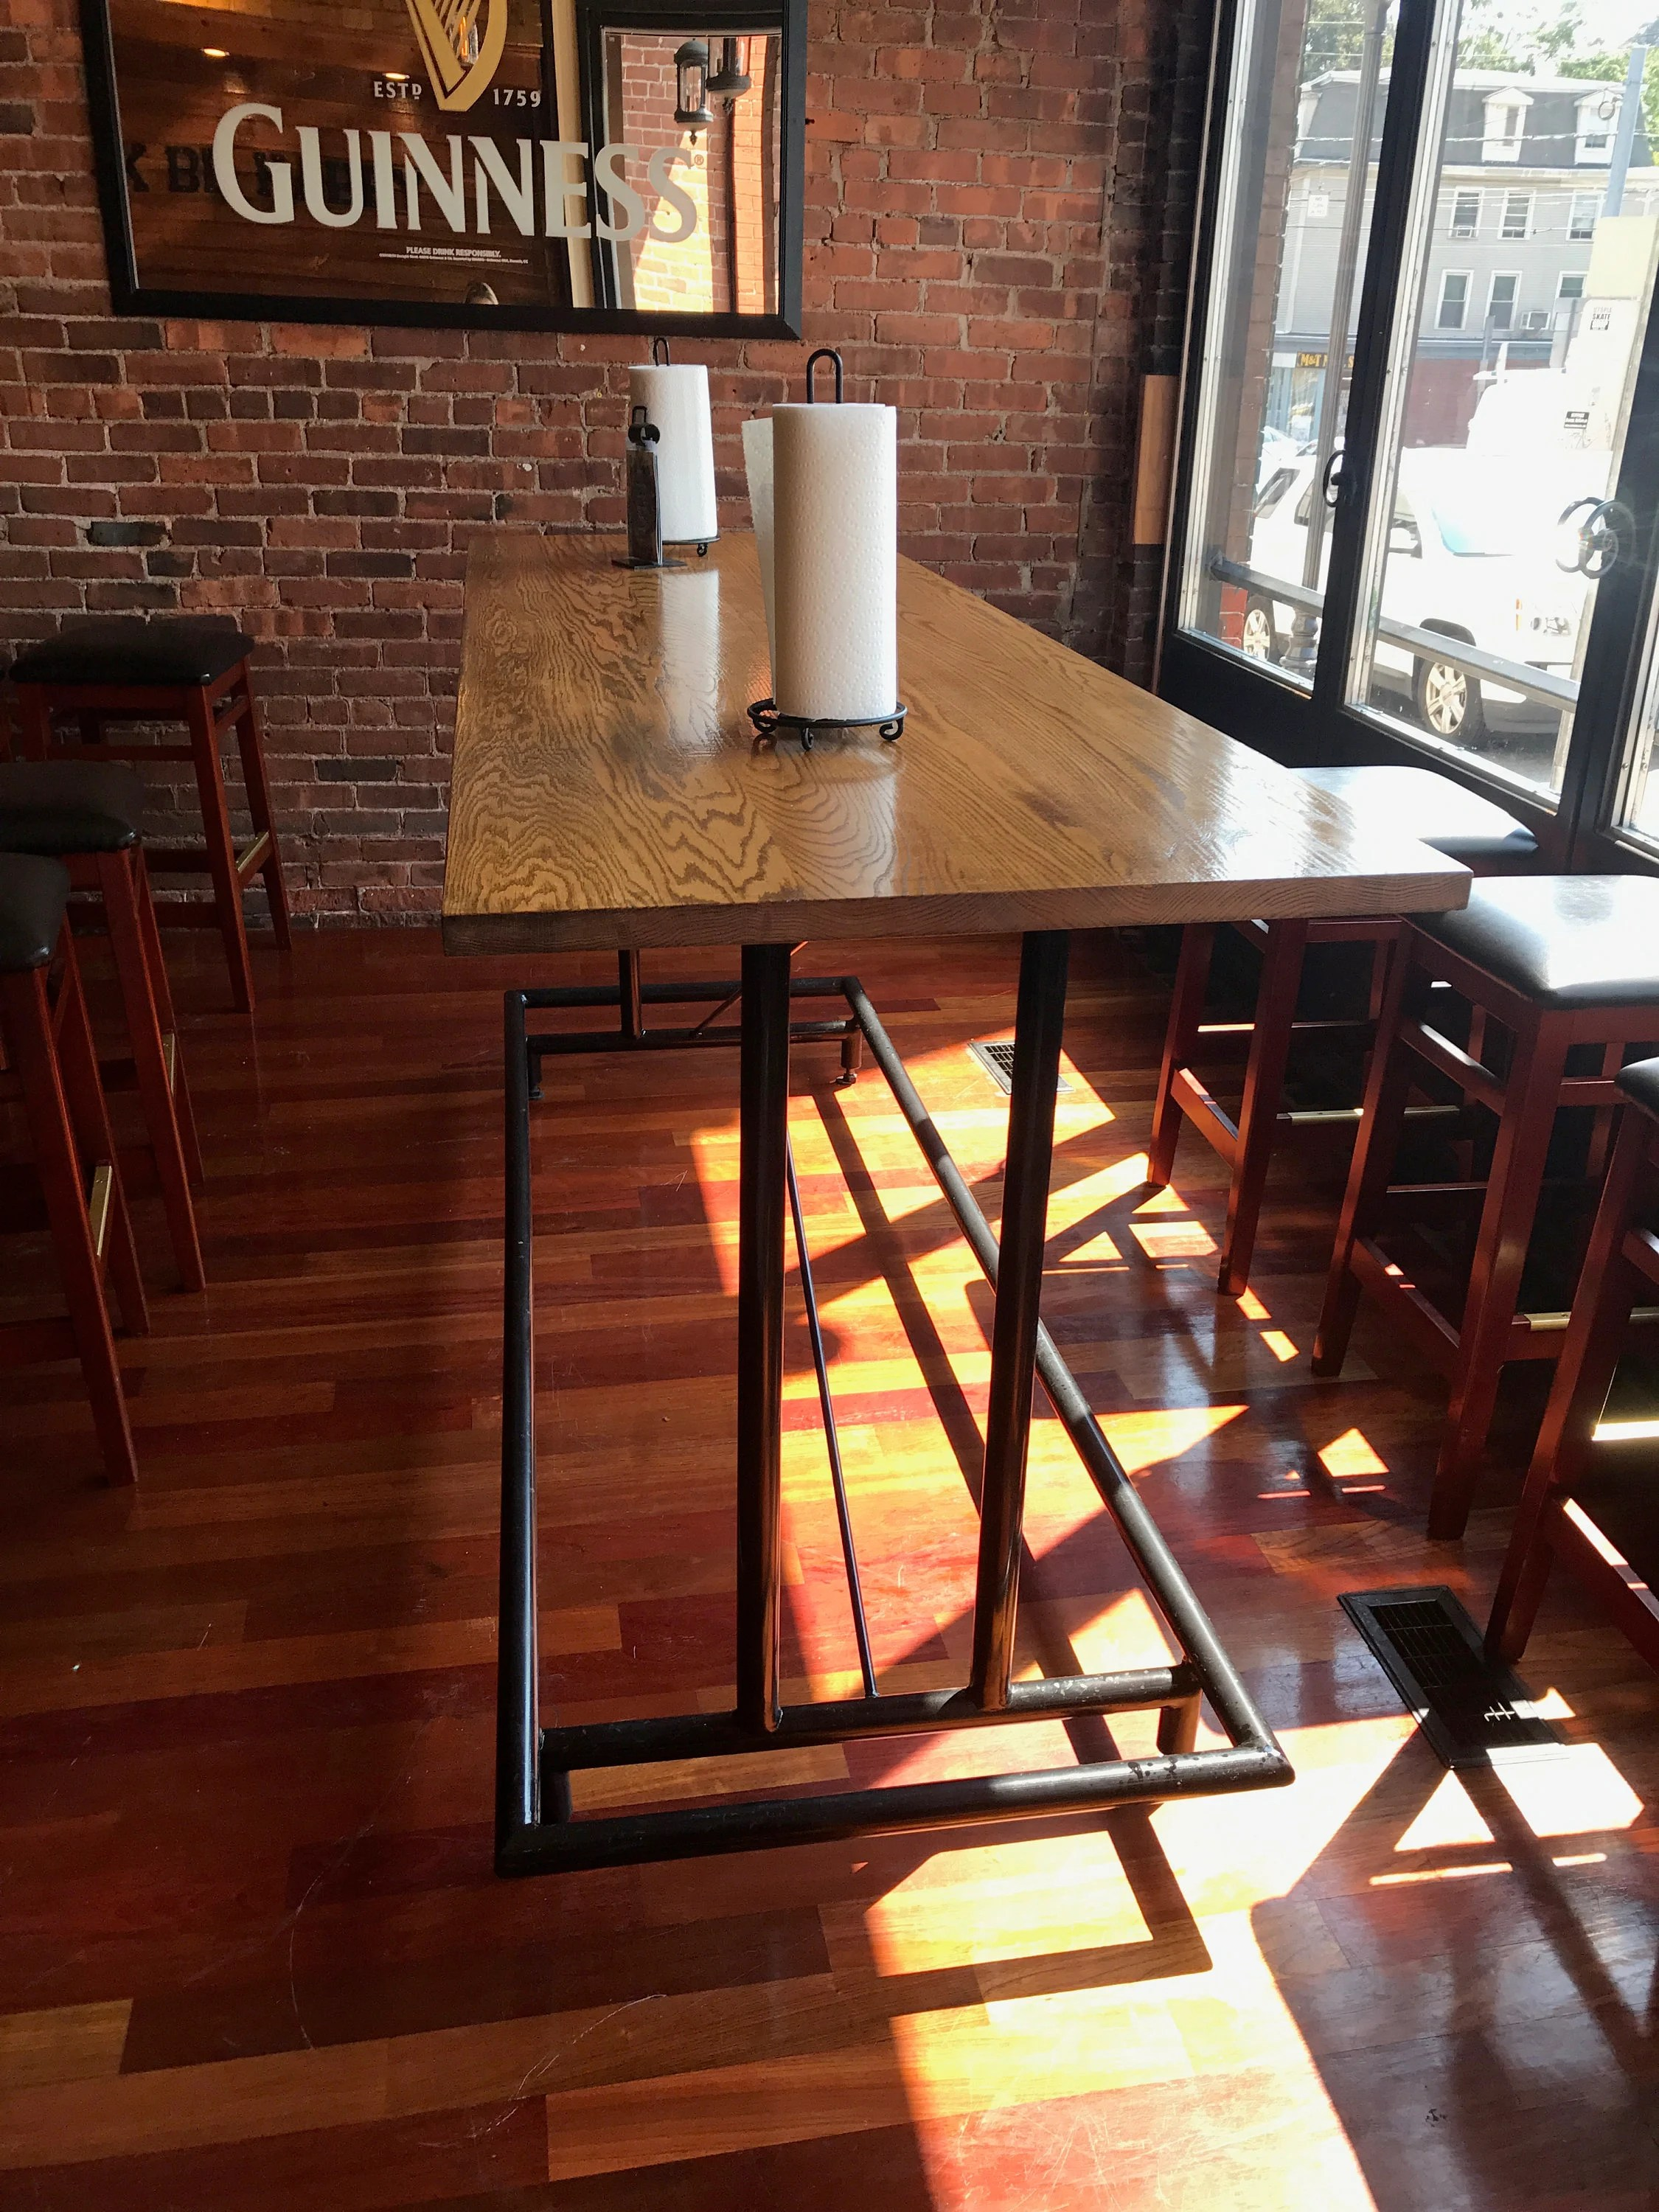 Reastaurant Tables Community Table Bases Restaurant Tables Table Bases Steel Base Industrial Table Base Communal Table